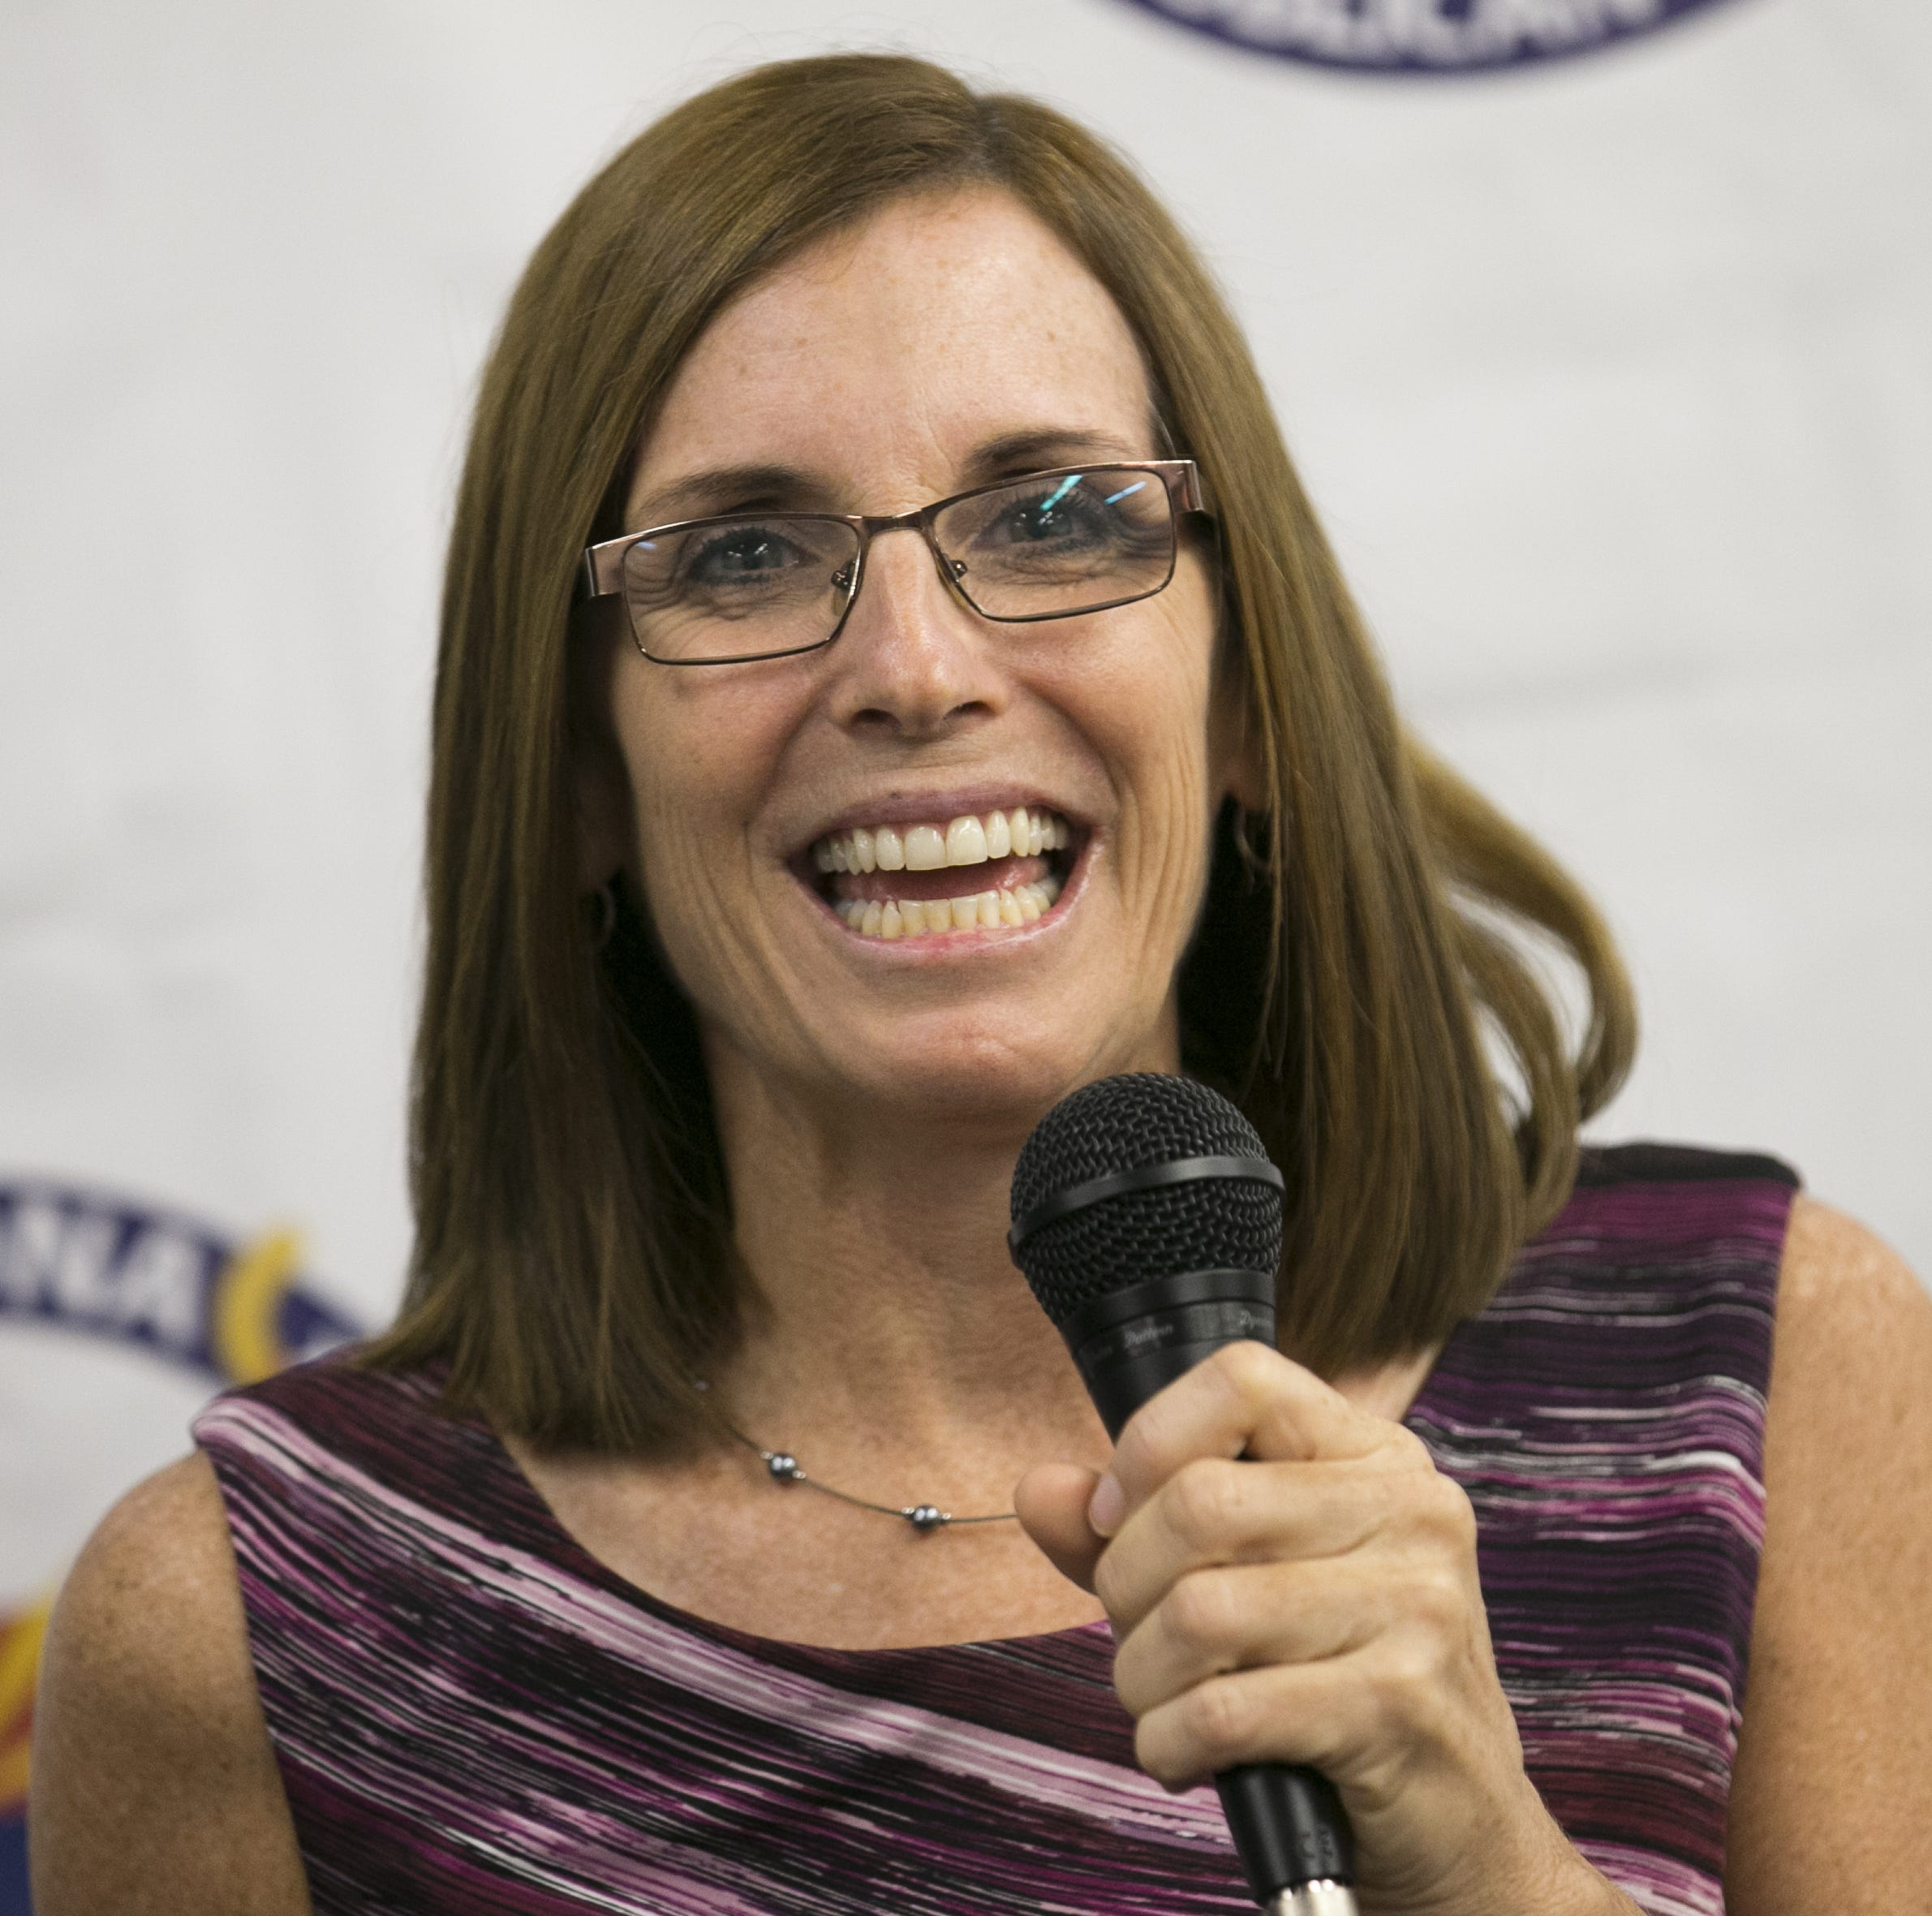 Rep. Martha McSally says goodbye to the House, but not Washington